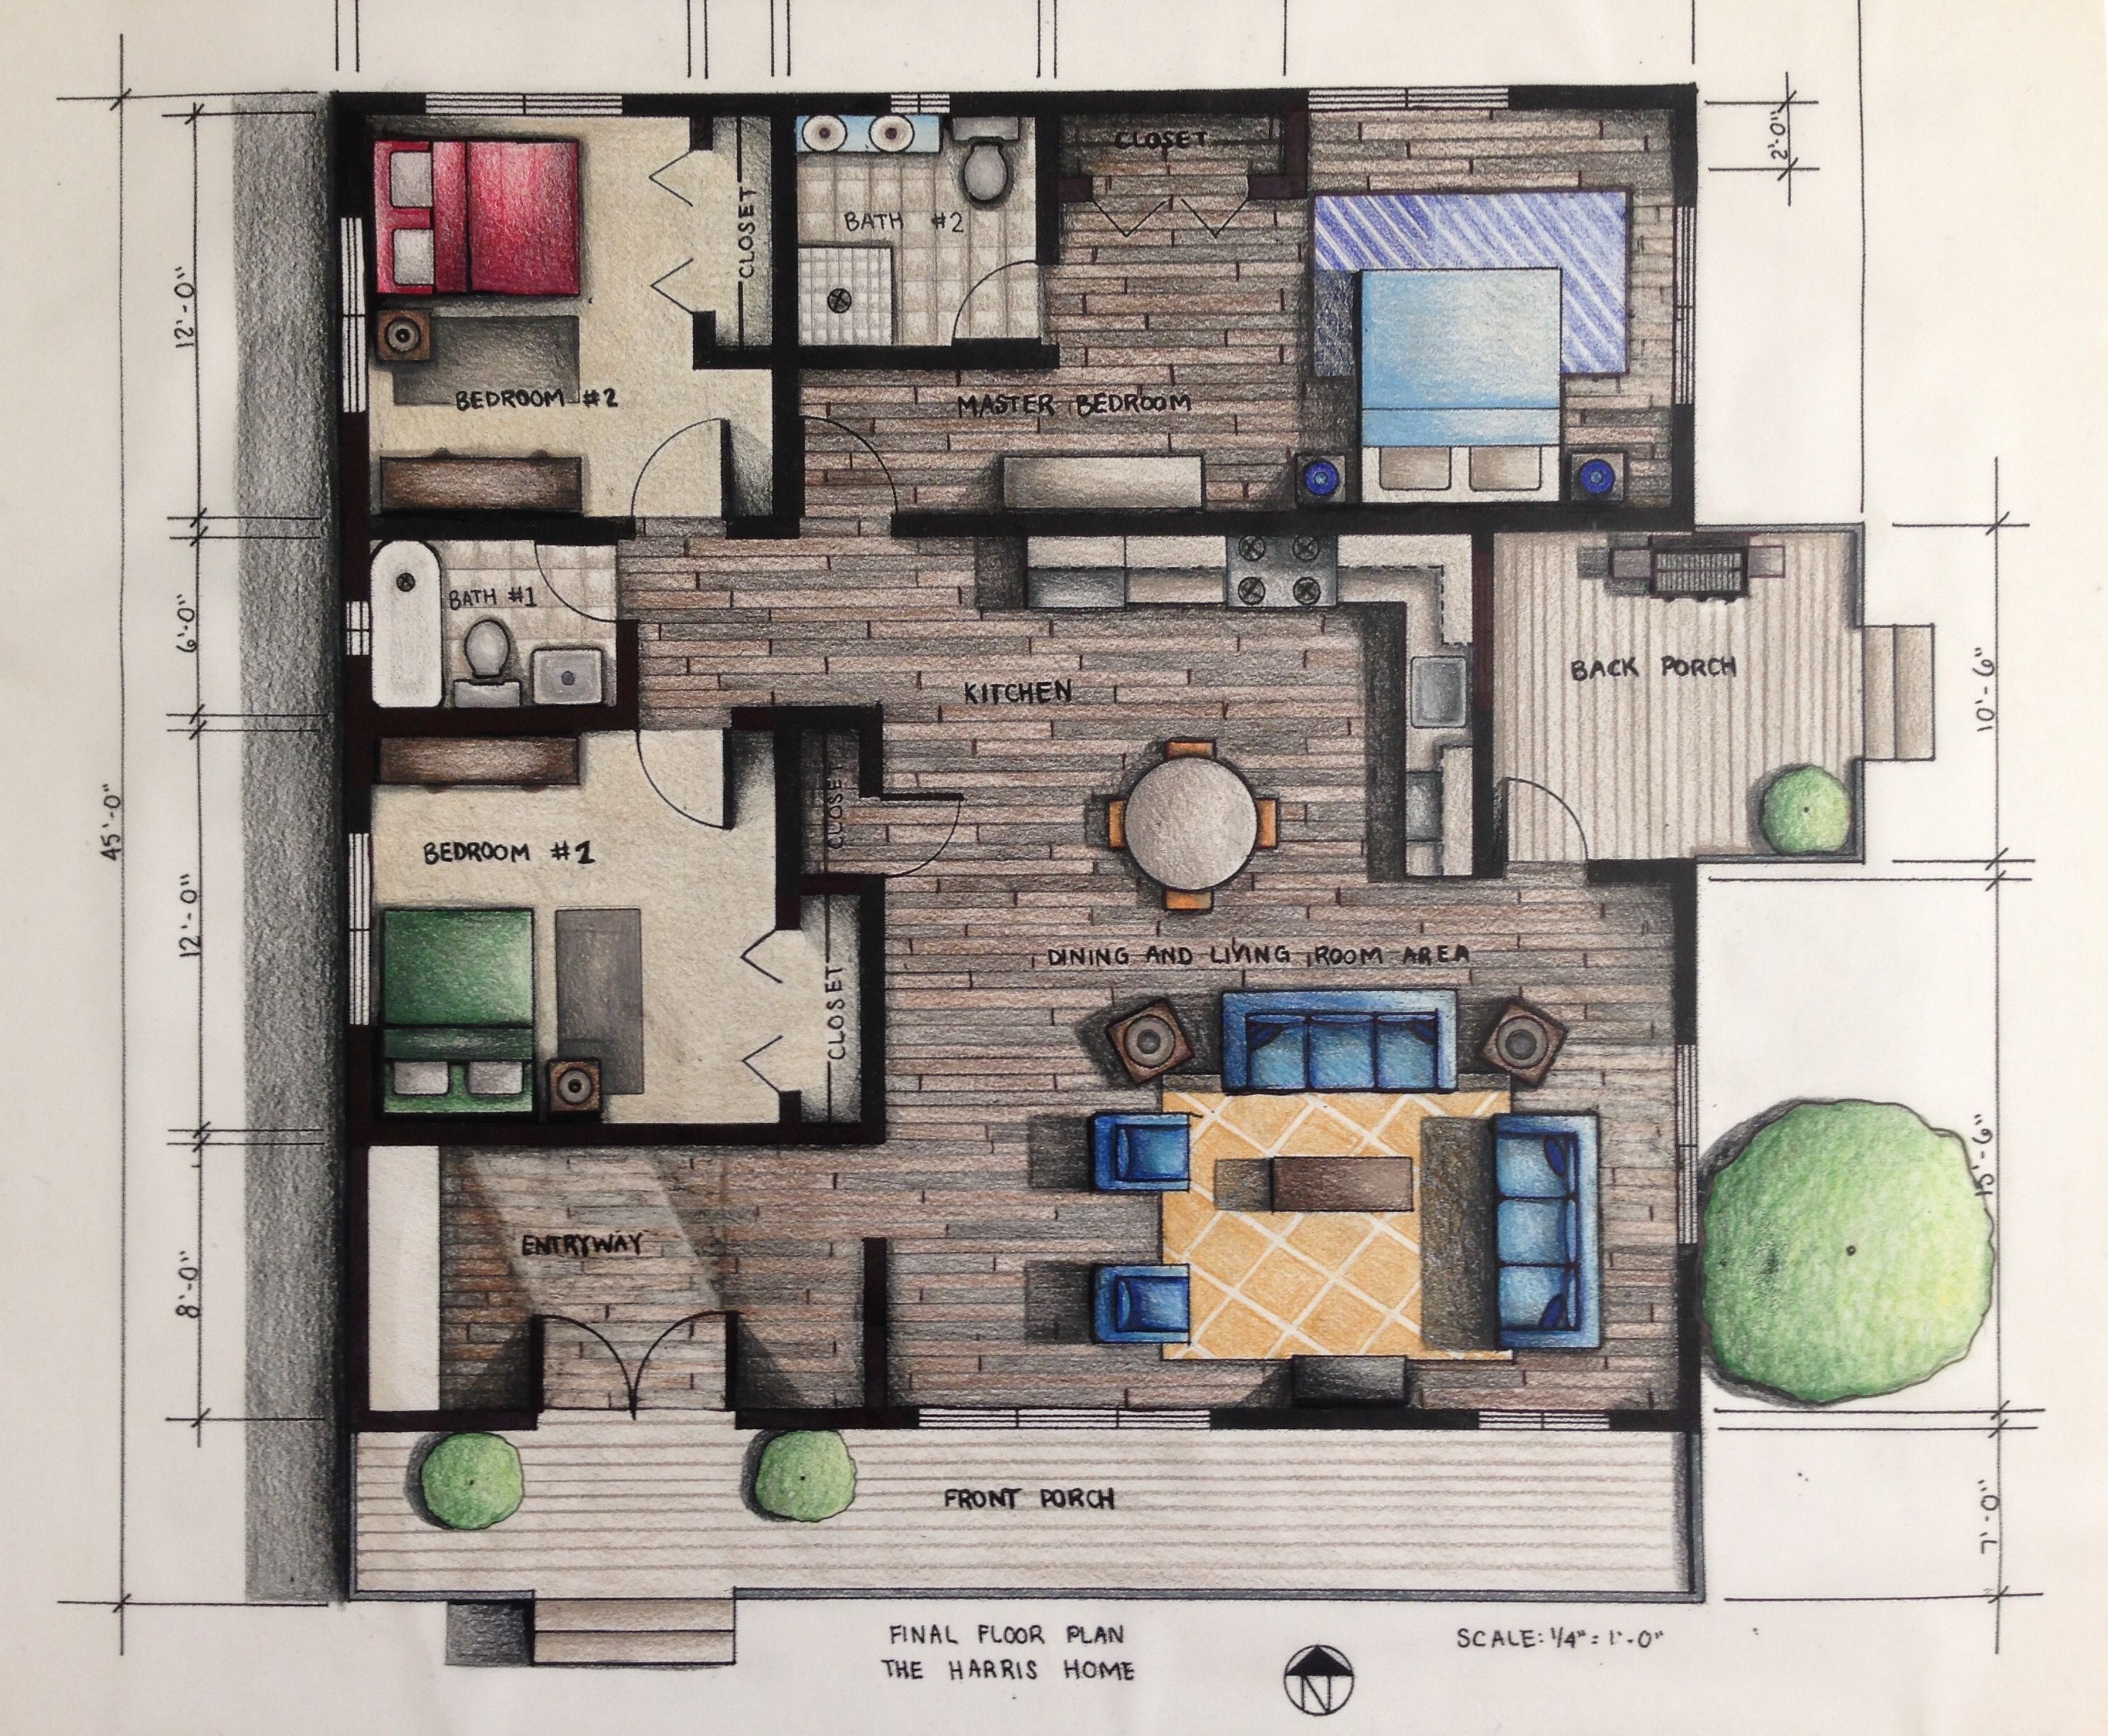 Rendered floor plan hand rendered using prismacolor for House drawing plan layout